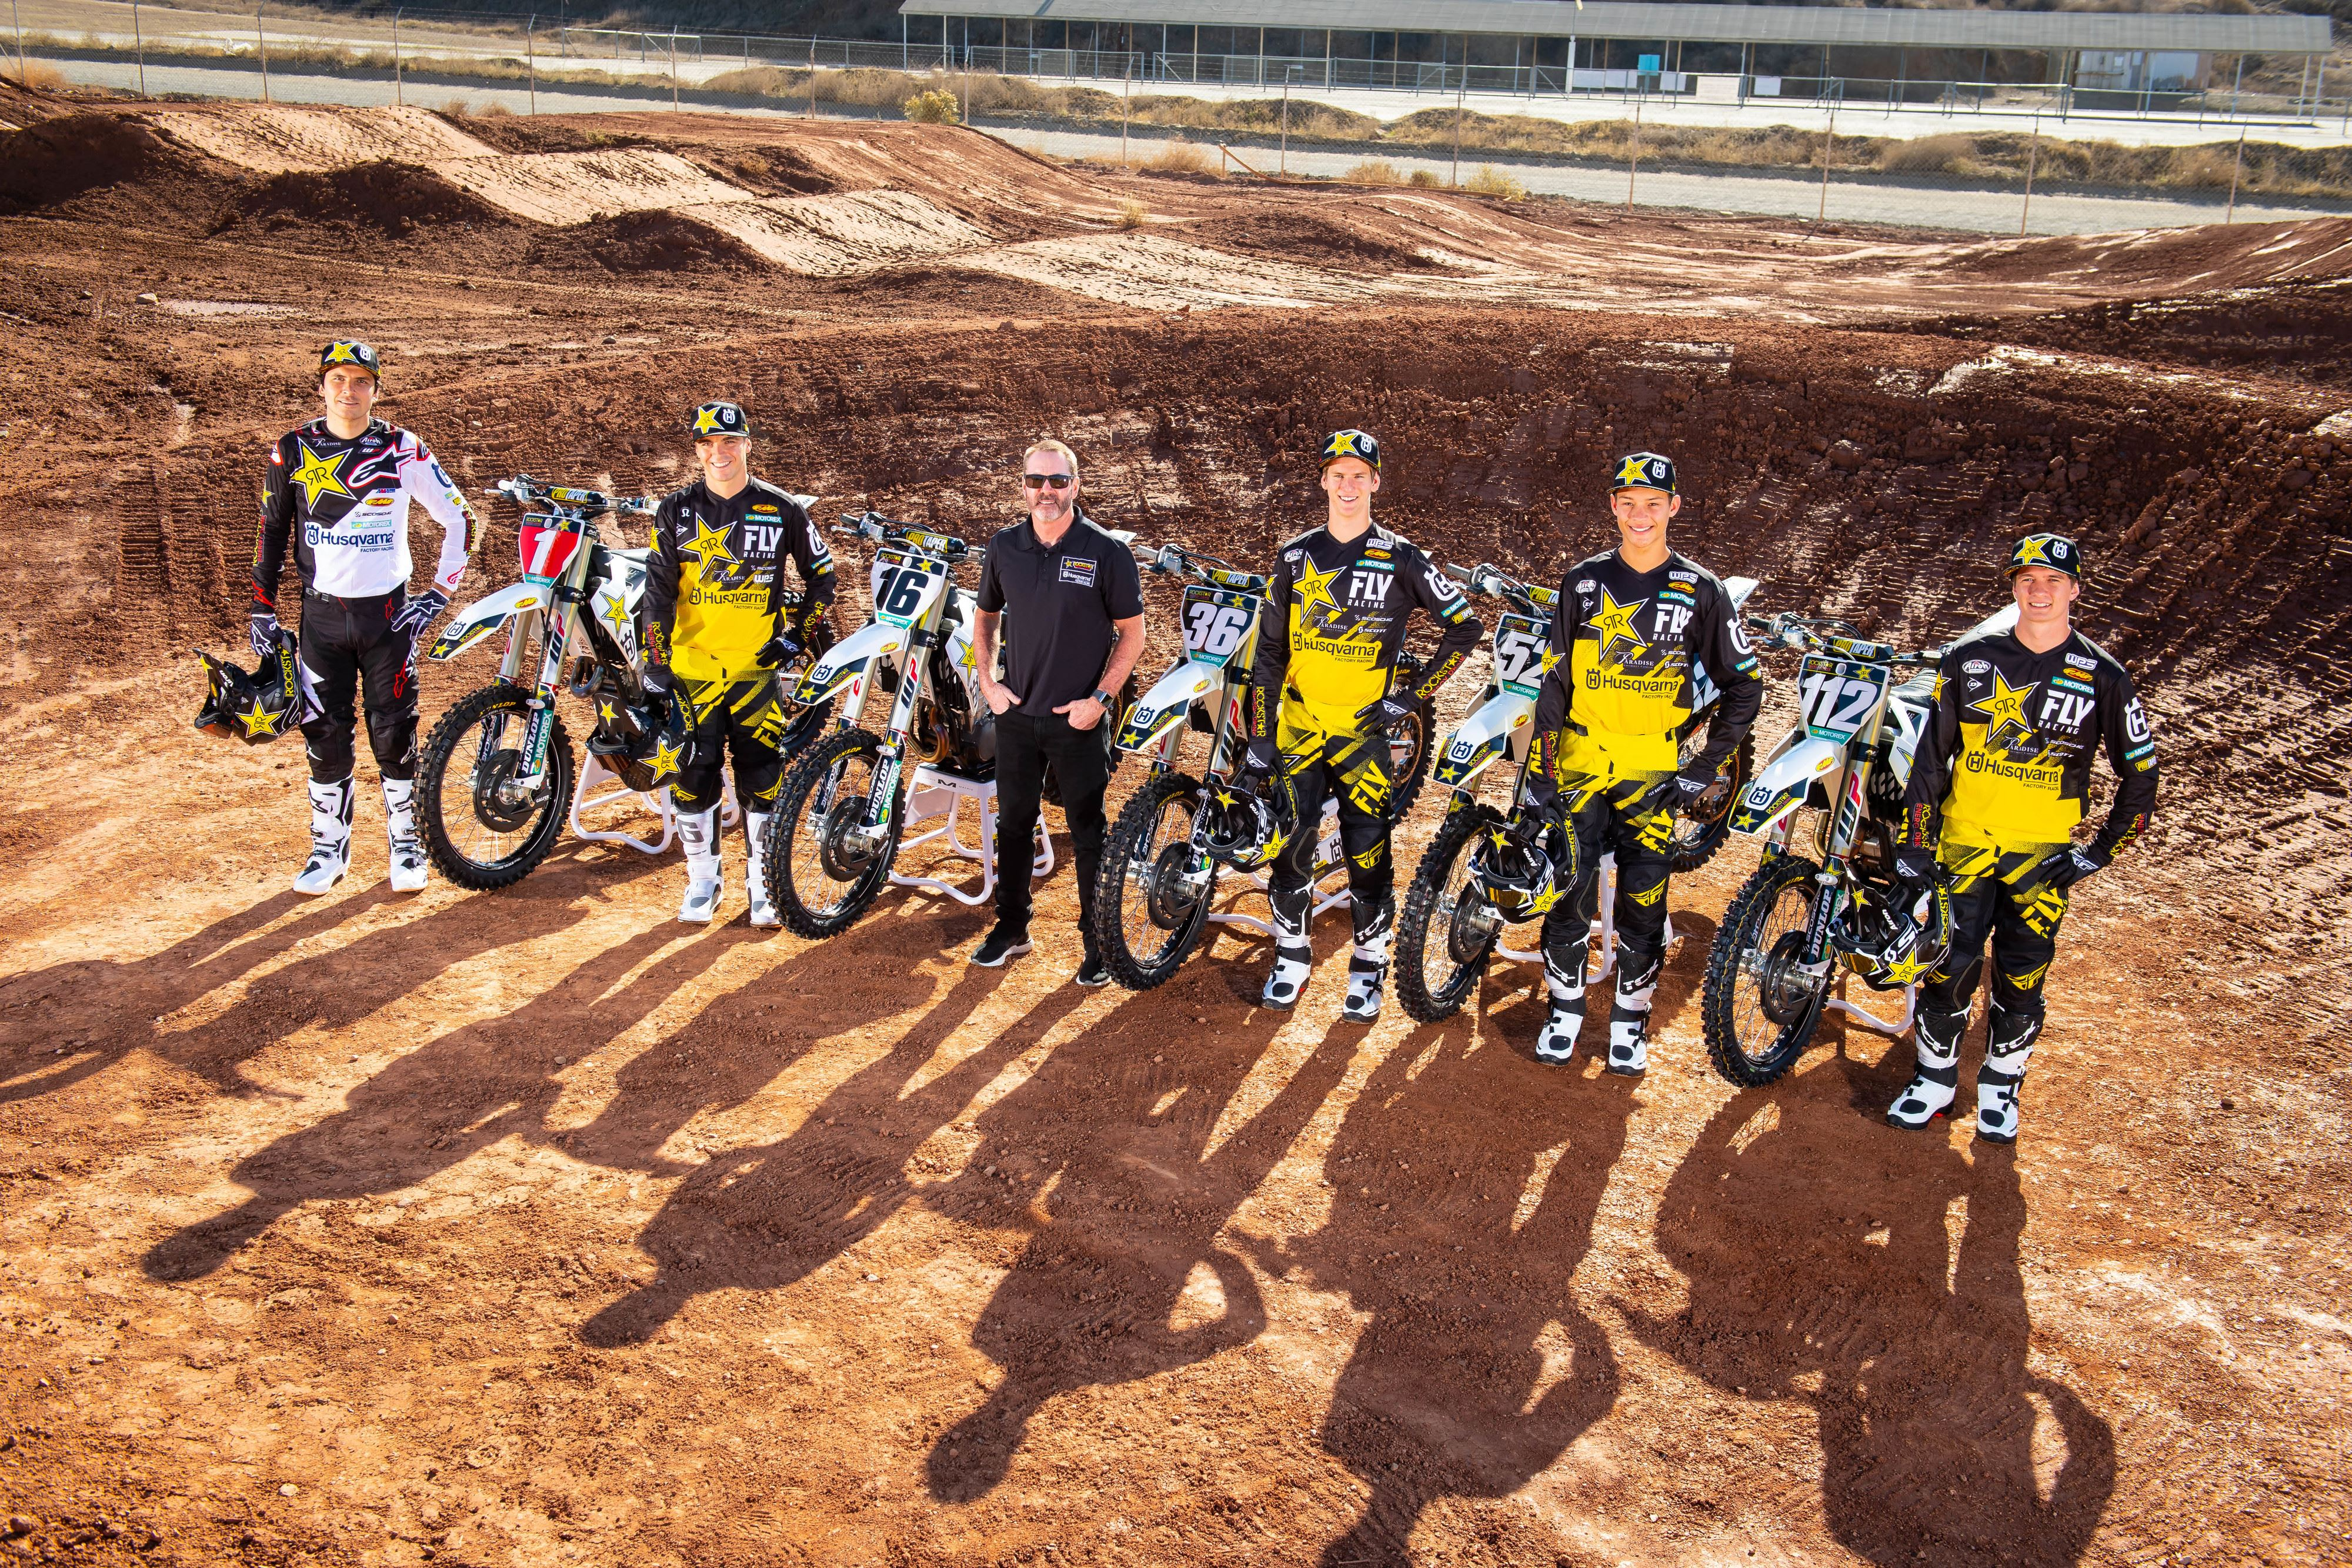 Husqvarna Announces 2019 AMA SX / MX Team Lineup